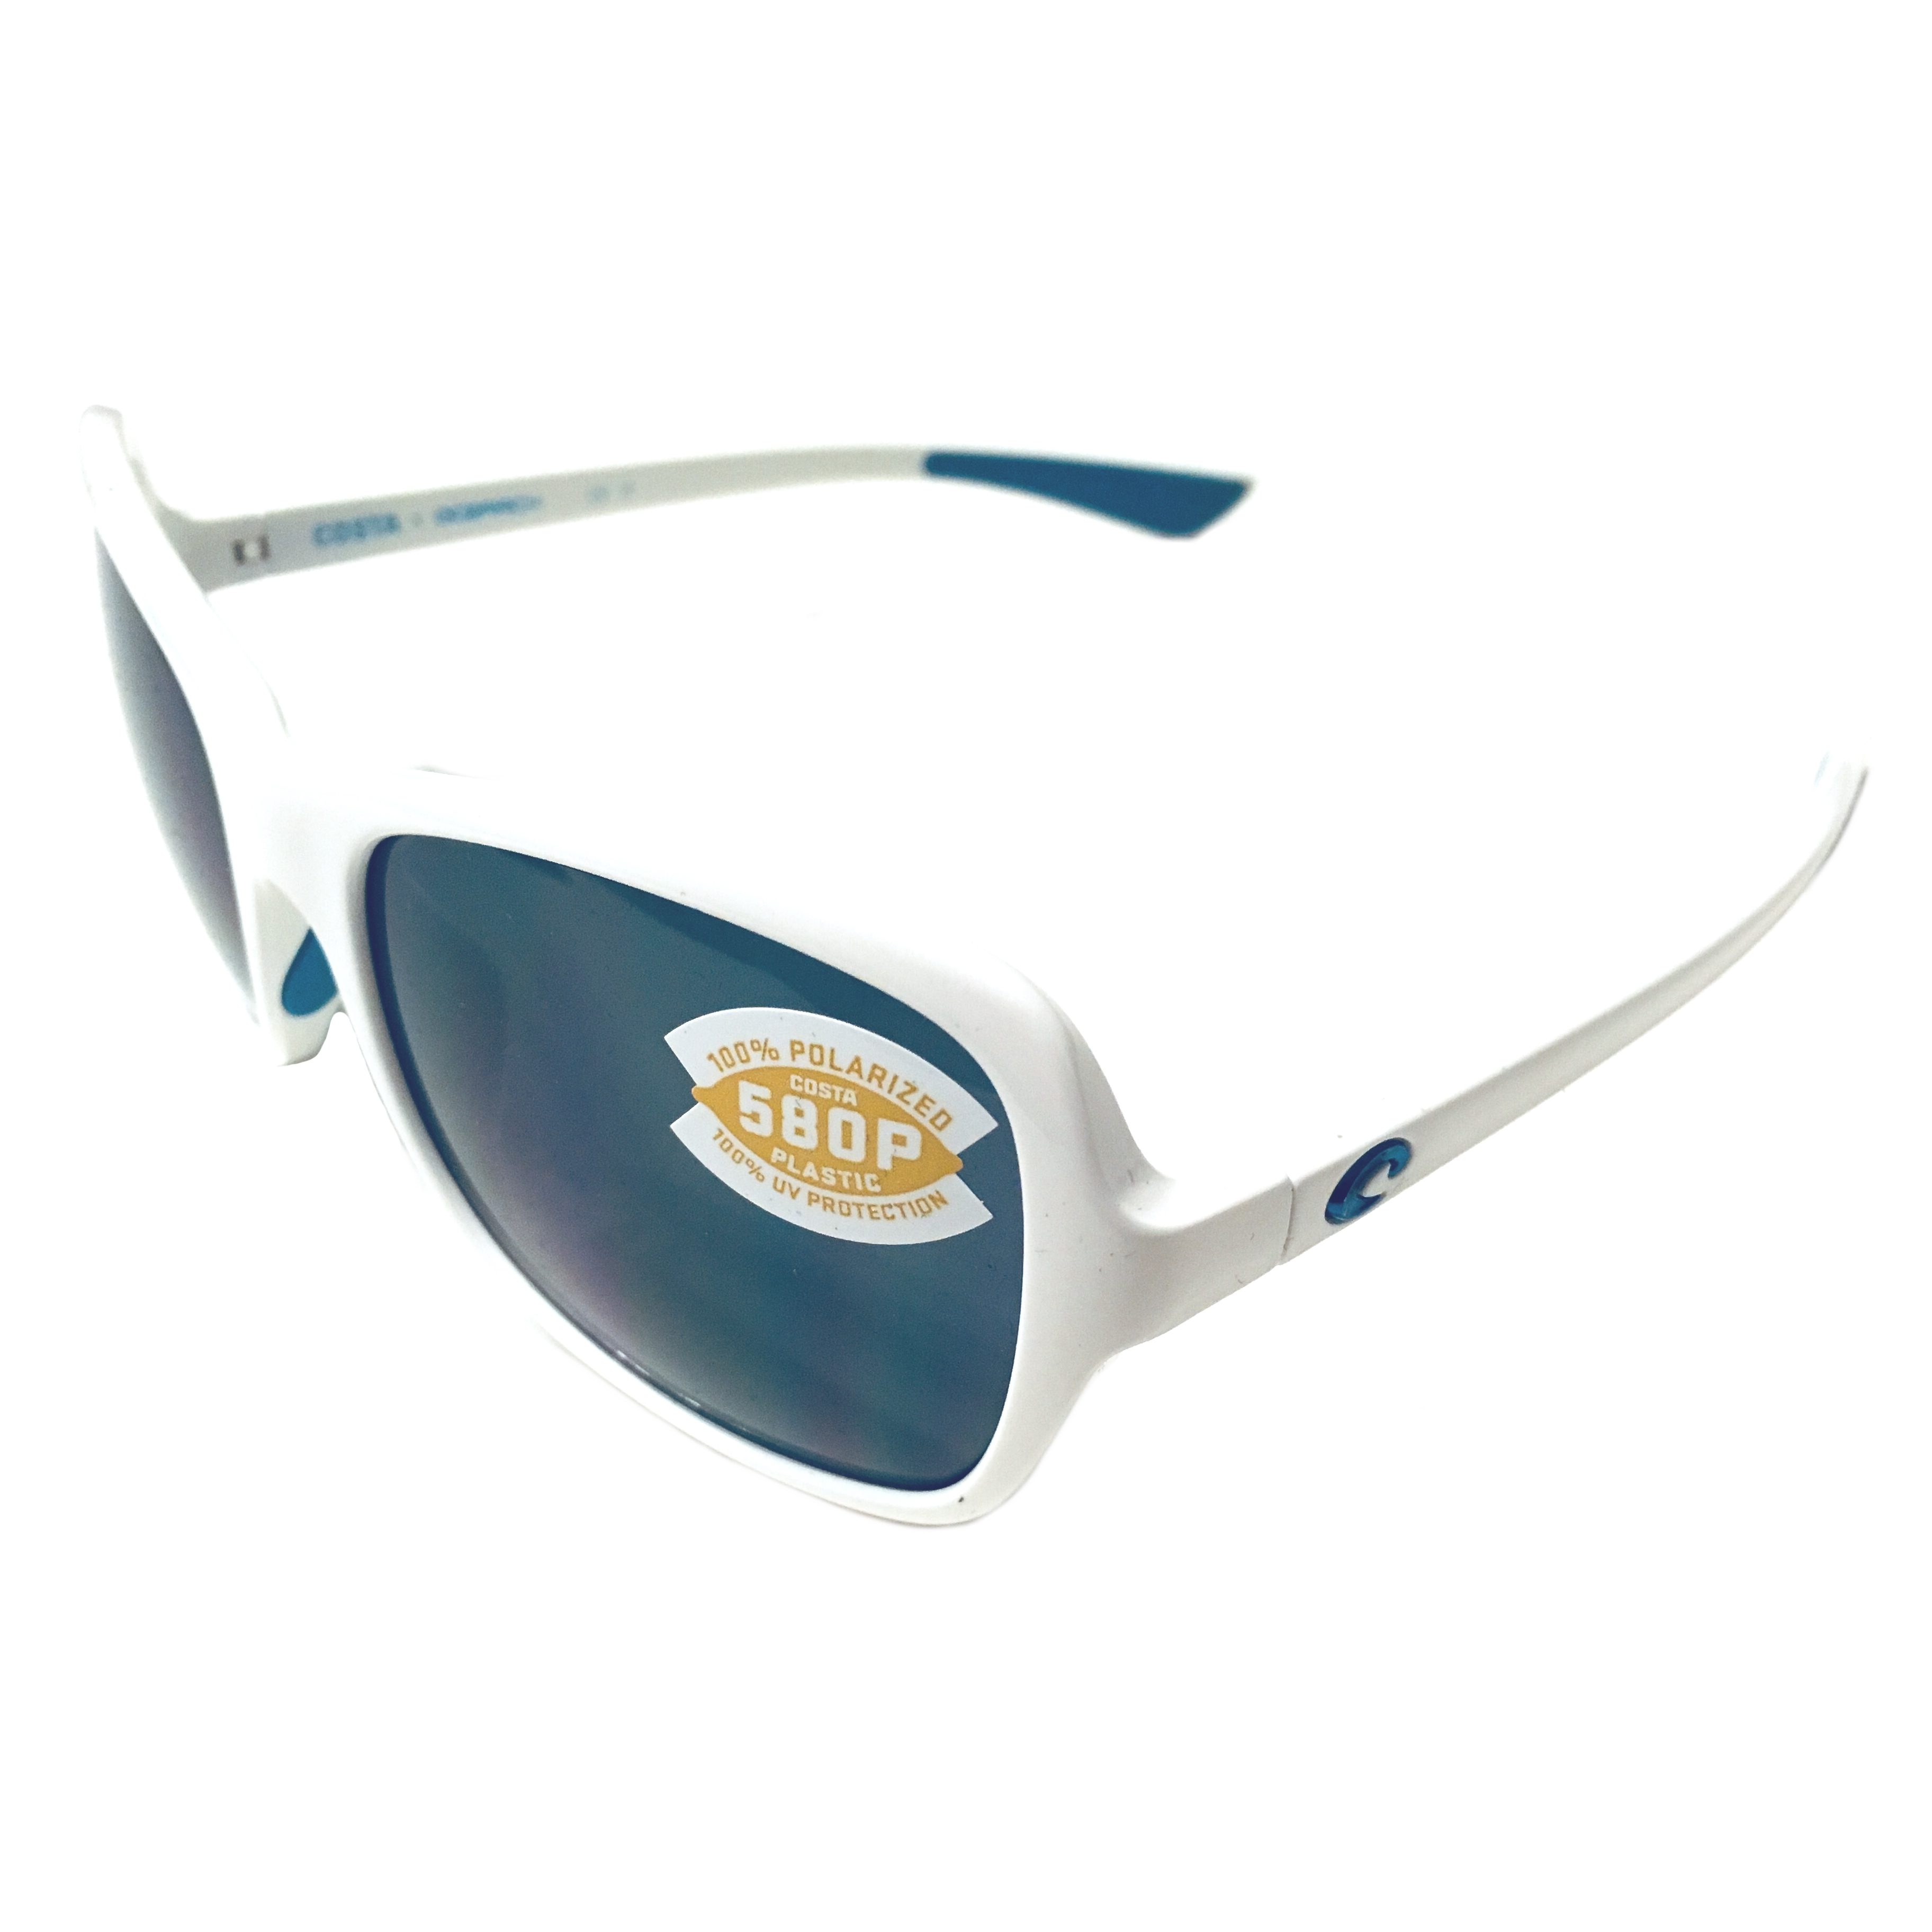 9ace766d8a4d7 Costa Del Mar Kare Sunglasses - Great White Ocearch - POLARIZED Gray 580P